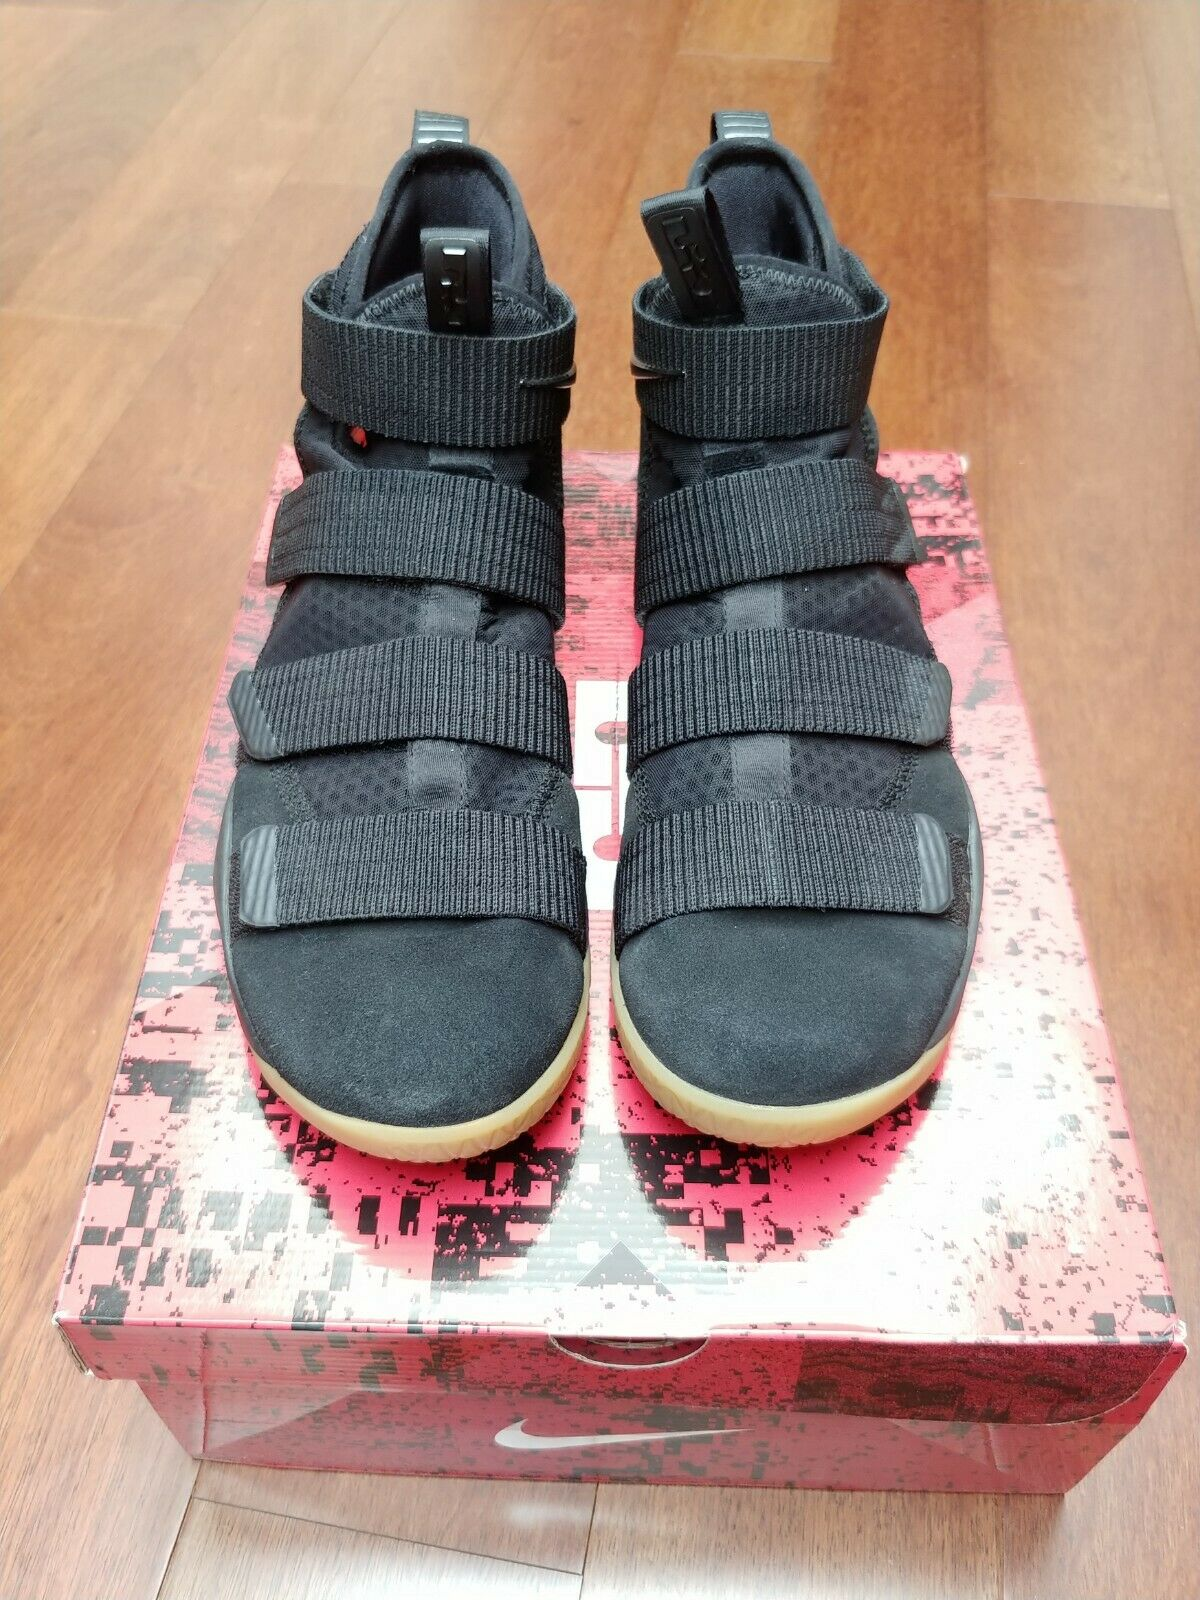 Nike Lebron Soldier XI  basketball shoes - Black Gum - Size 11.5 - 897644-007